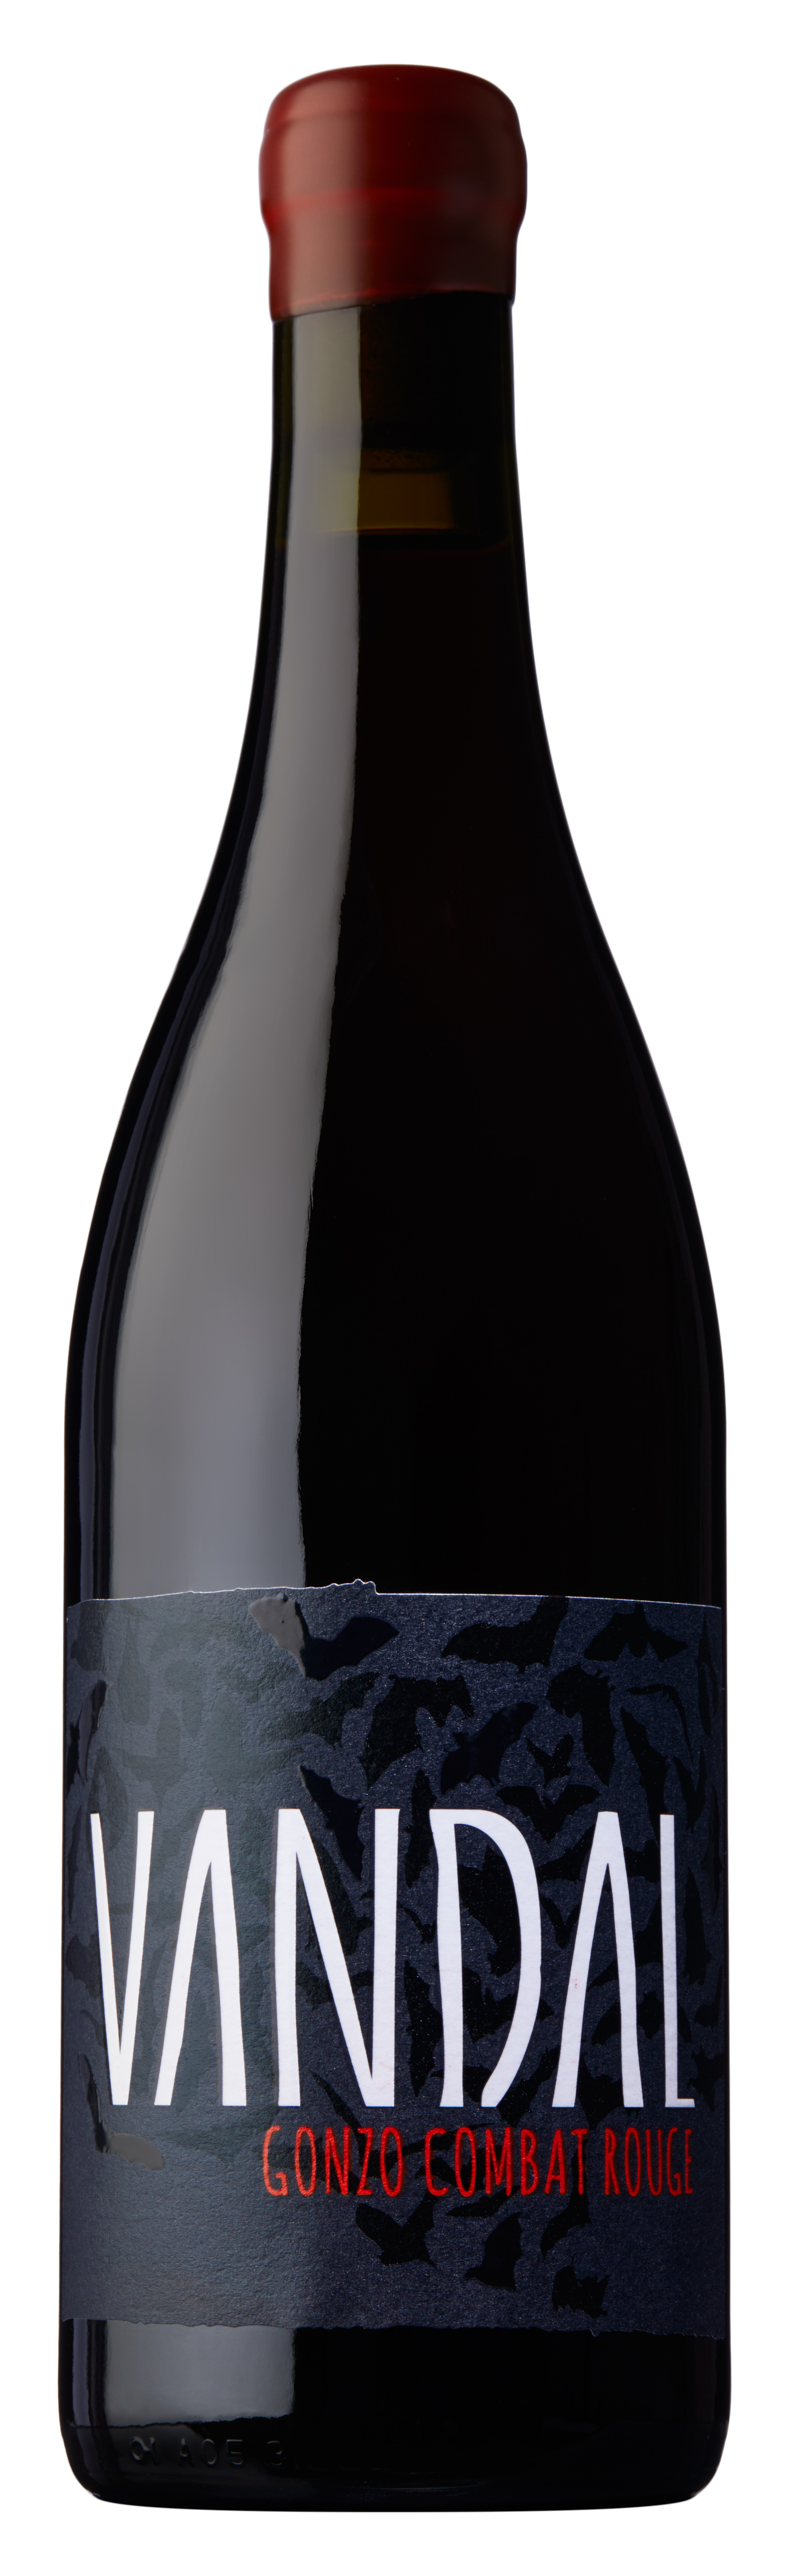 Gonzo Combat Rouge 2018 - Field Blend of Pinot Noir, Syrah and Viognier From a single vineyard in the Southern Valleys of Marlborough. 50% whole cluster fermentation Only hand plunged once during fermentation. Small batch pressed. 6 months aging on full yeast lees. Natural (wild) fermentations (Alcohol and 100% malo lactic fermentation). Unfined and unfiltered. Analysis 13.0% alc, total acidity 5.4 g/l, residual sugar 0.3 g/l, dry extract 25 g/l